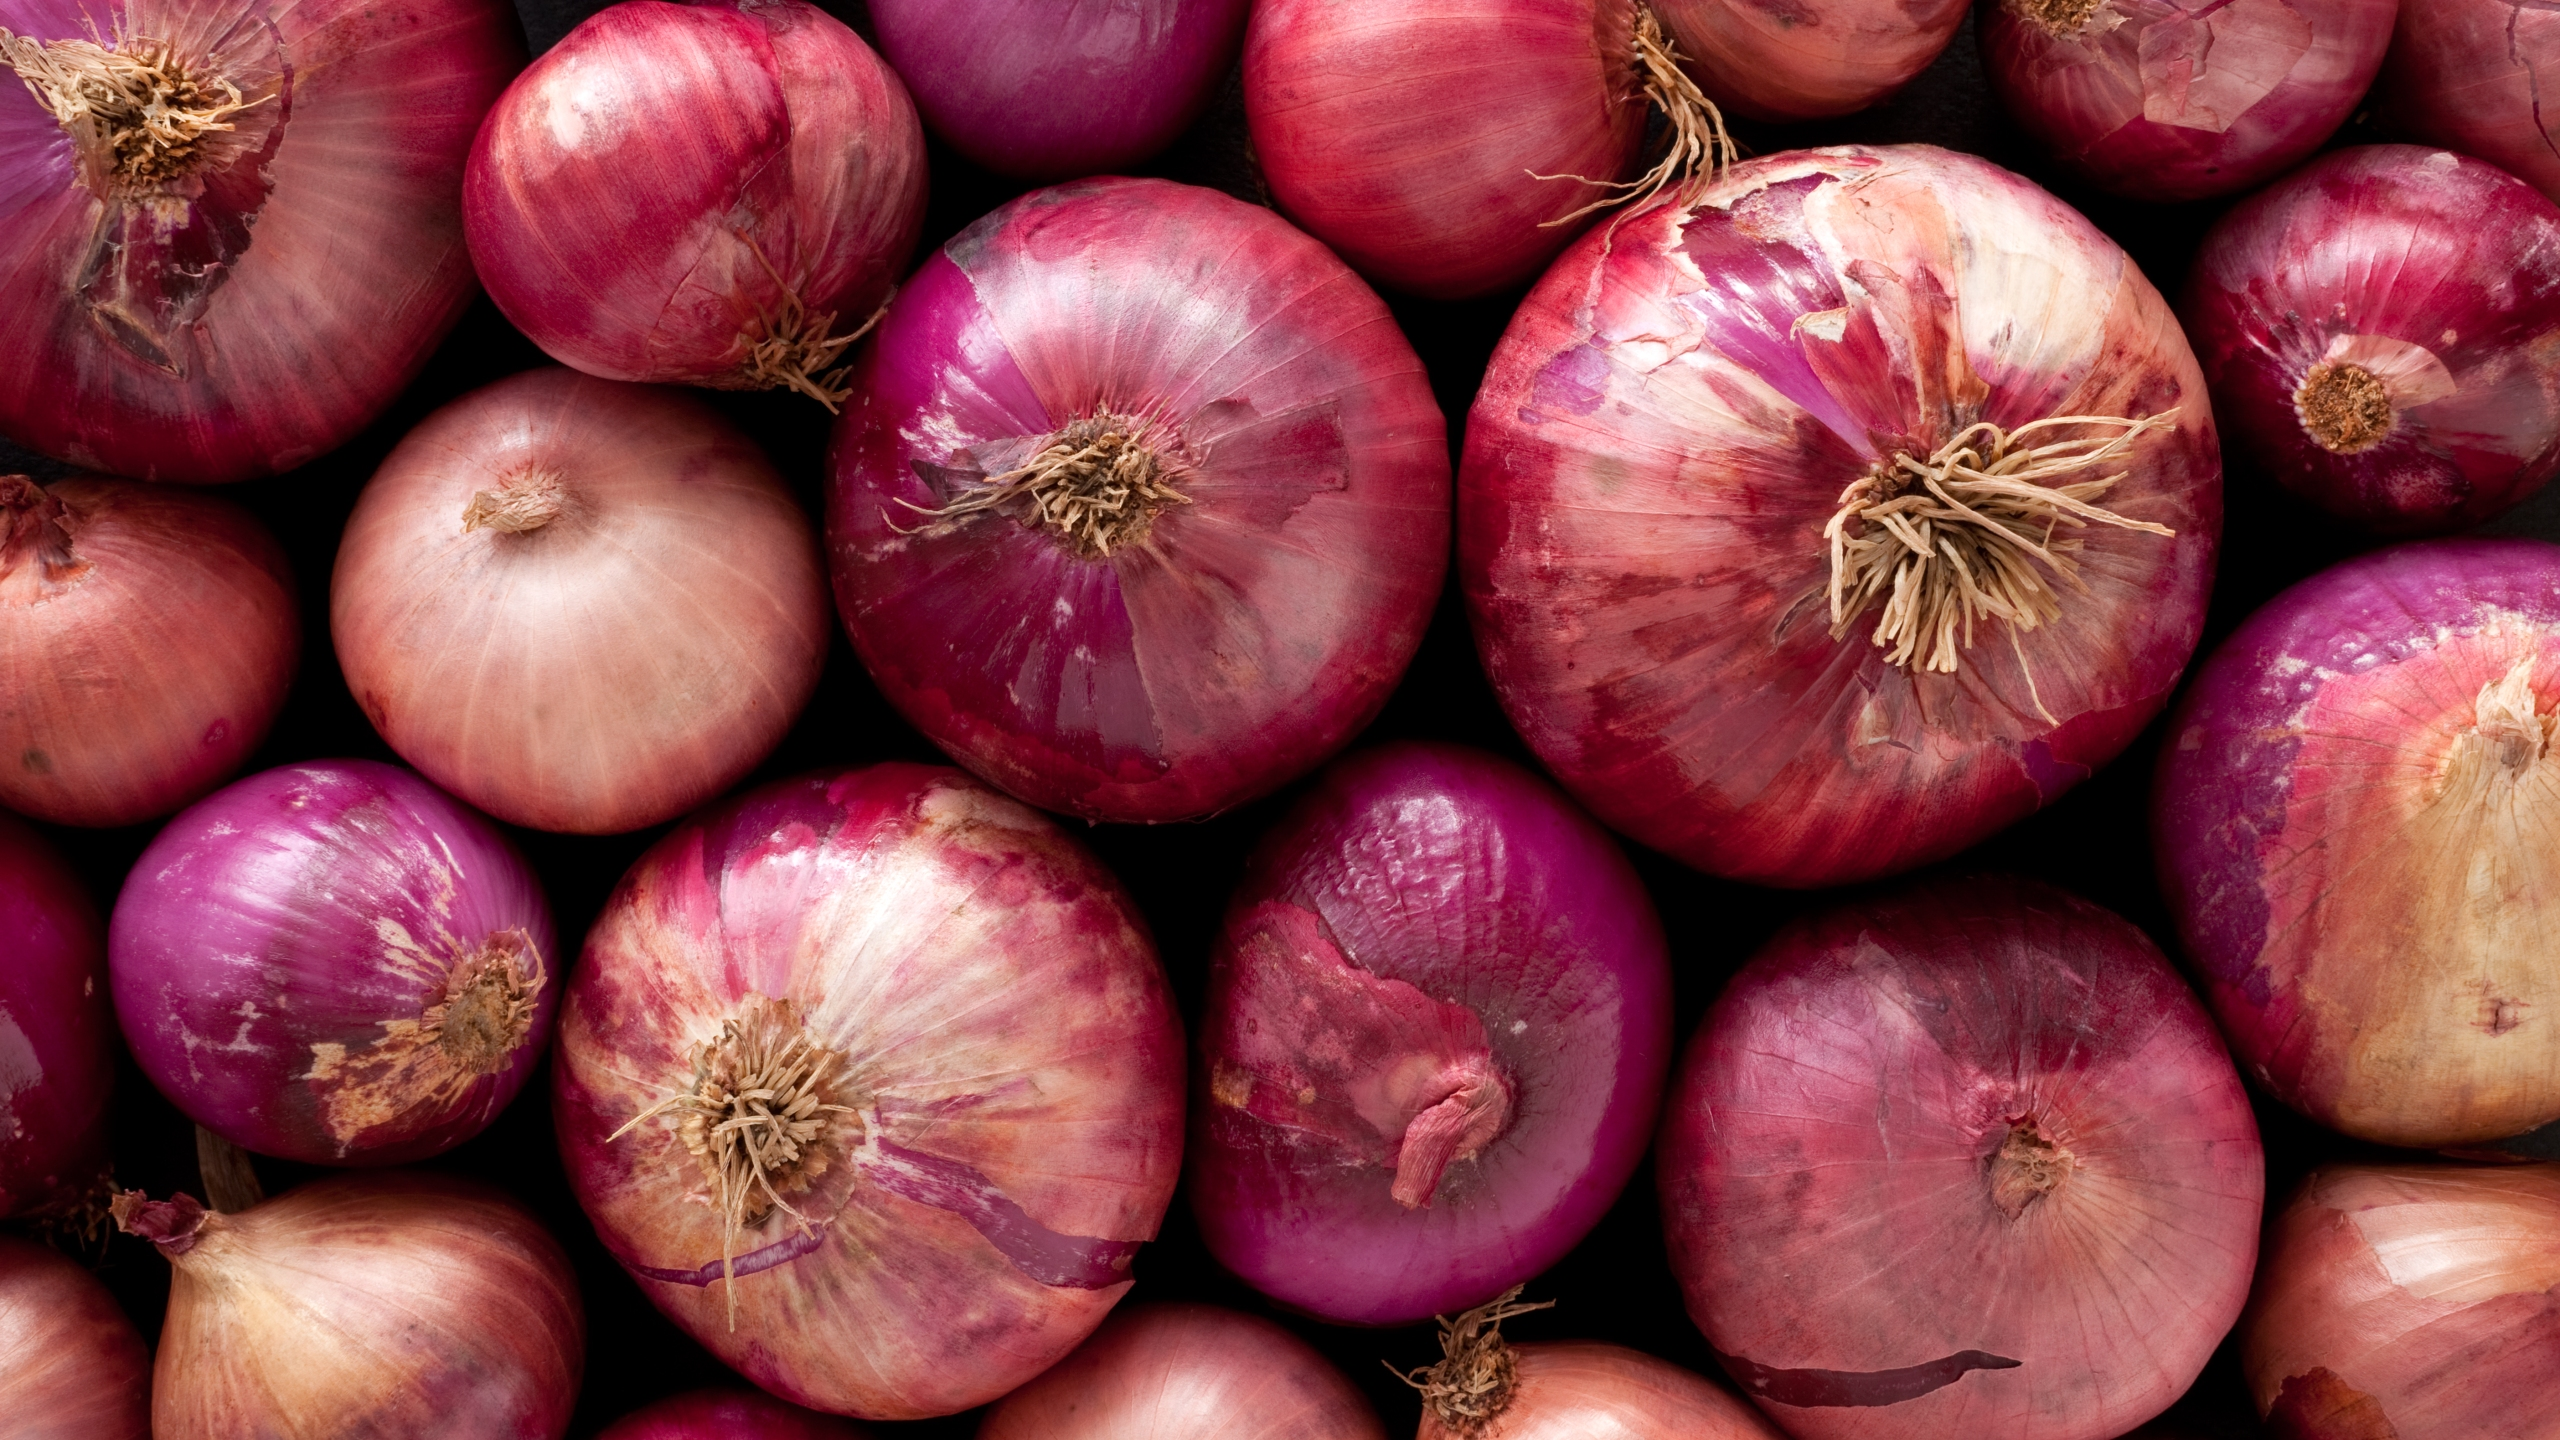 Red onions are seen in this file photo. (Getty Images)